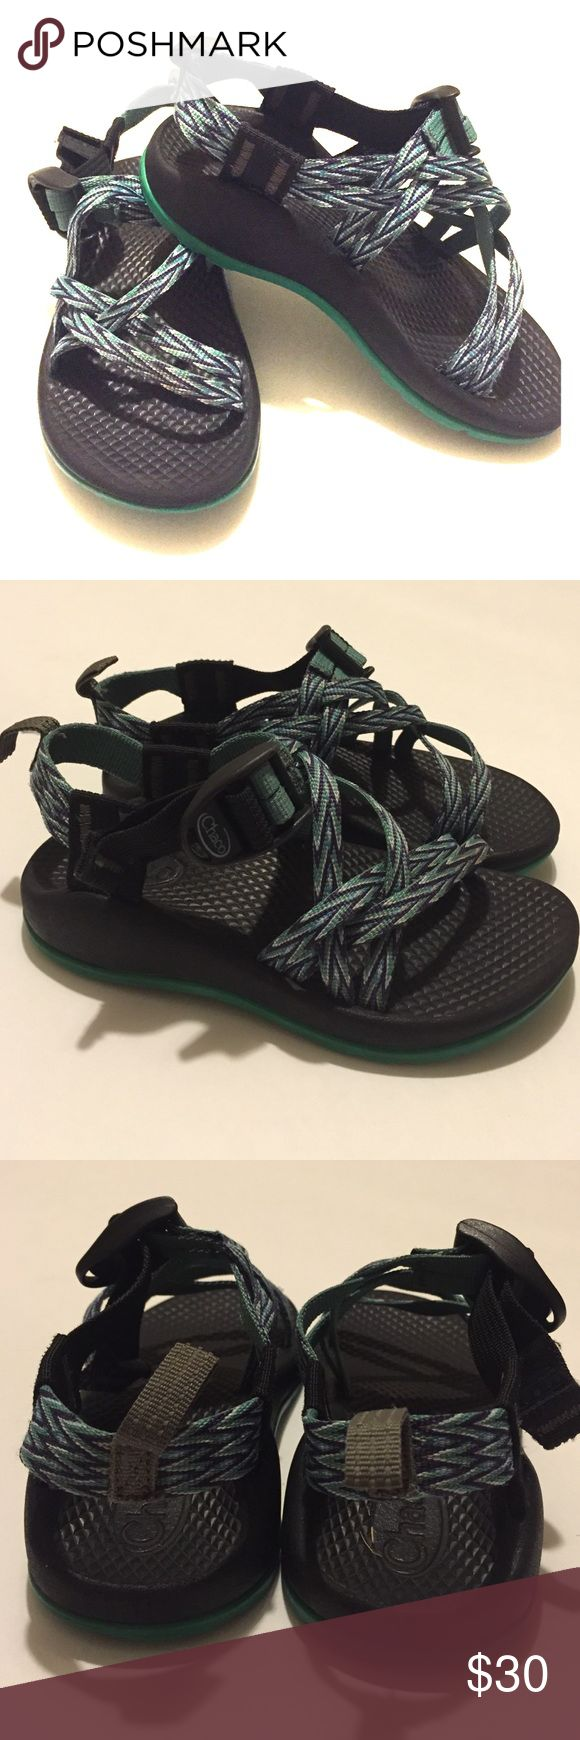 Kids Chaco shoes Kids ZX/1 EcoTread Chacos. Size 11, color Dagger. Great used condition. Open to offers. Chacos Shoes Sandals & Flip Flops